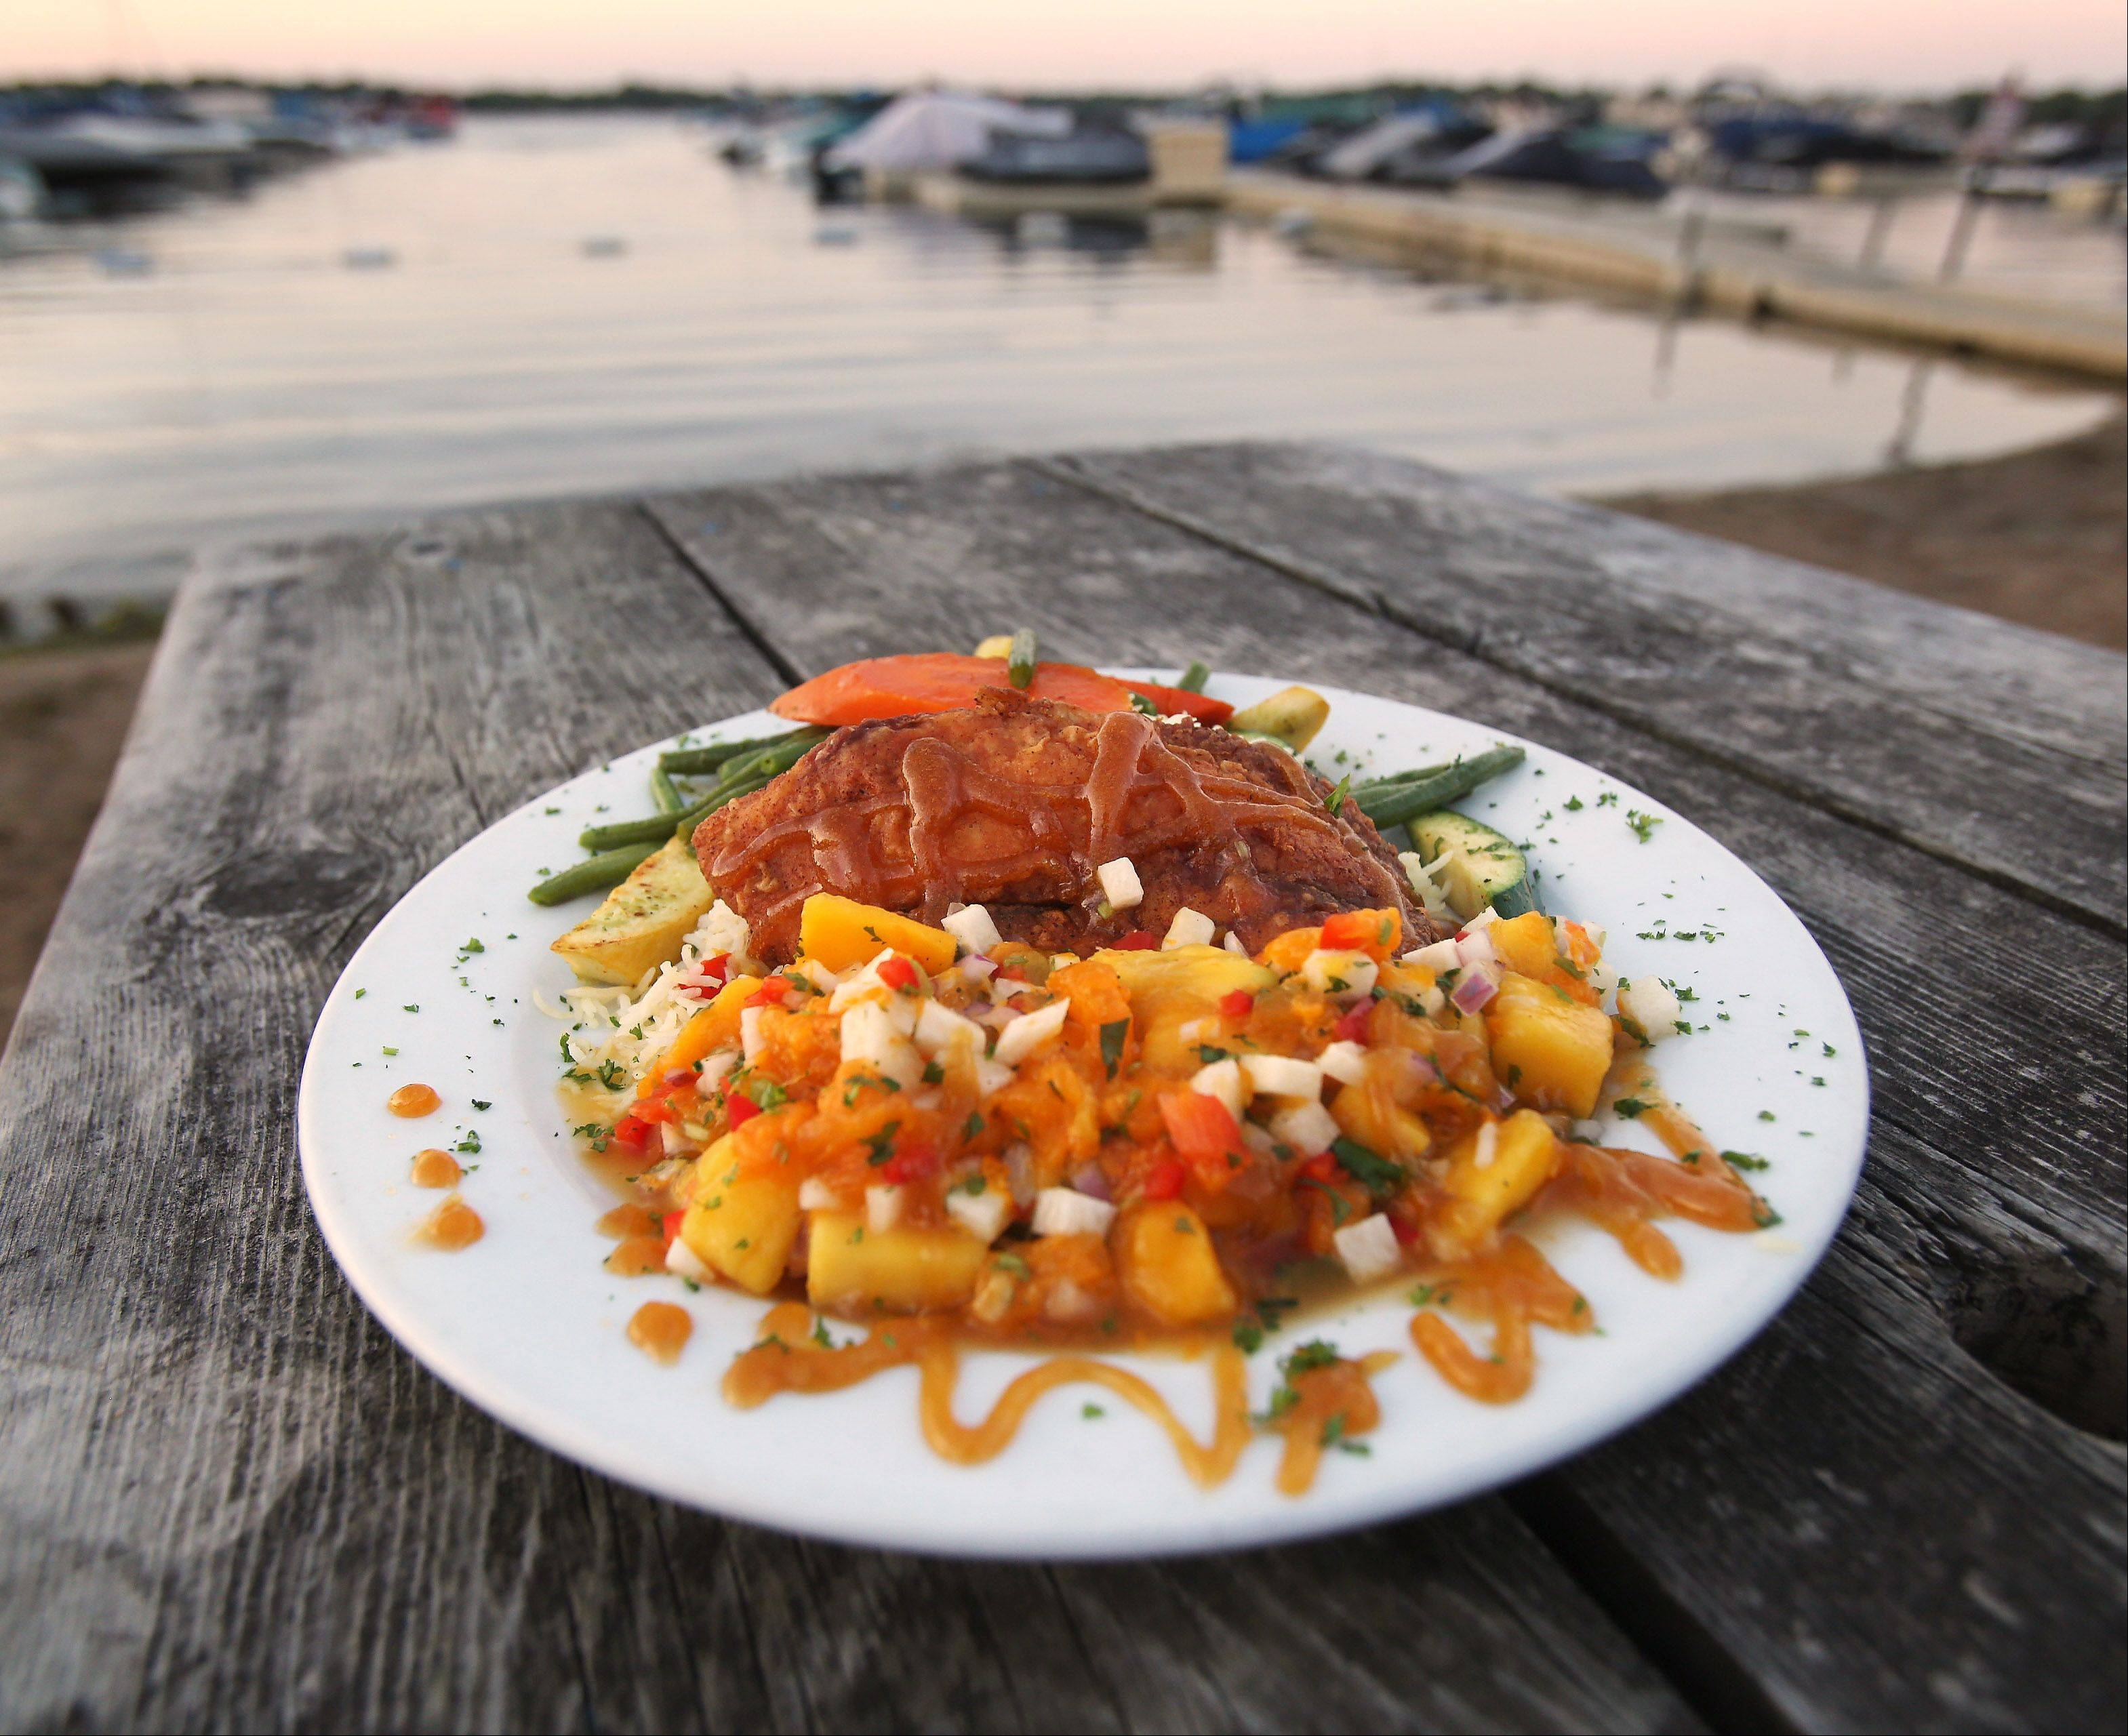 Enjoy summertime tilapia topped with mango salsa while taking in the view at Lindy's Landing in Wauconda.